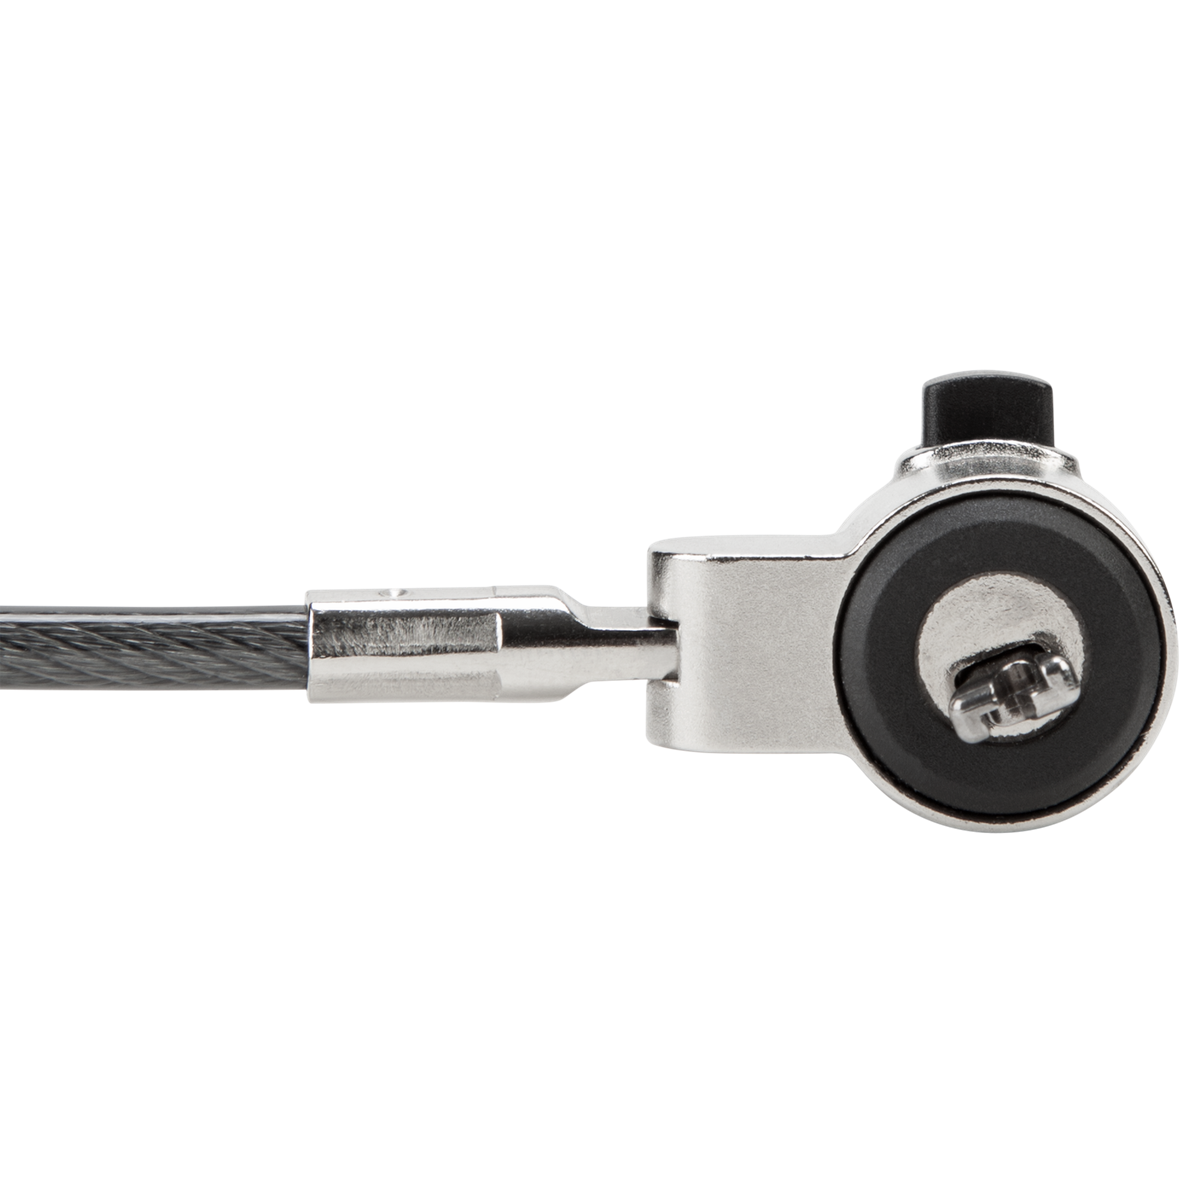 Picture of DEFCON® Serialised TrapEZoid Combo Cable Lock